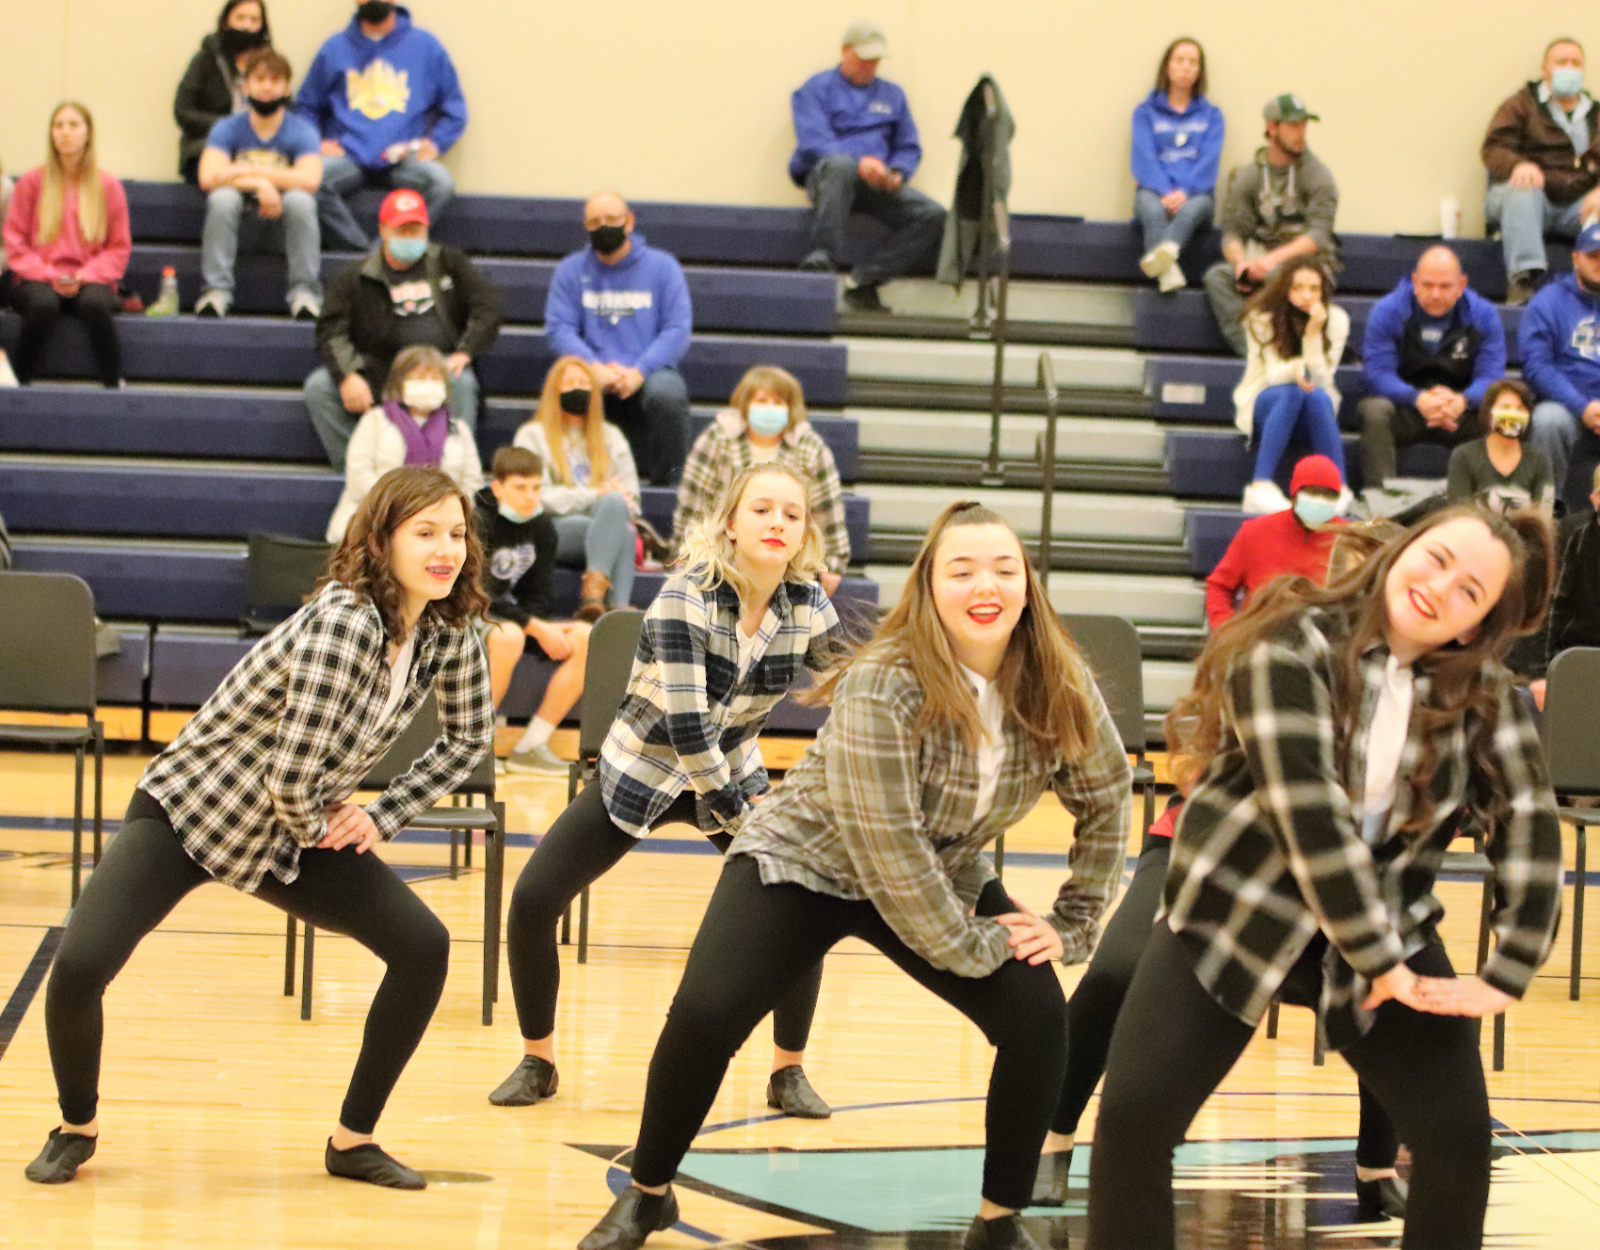 Dance Team during the Scott City Games